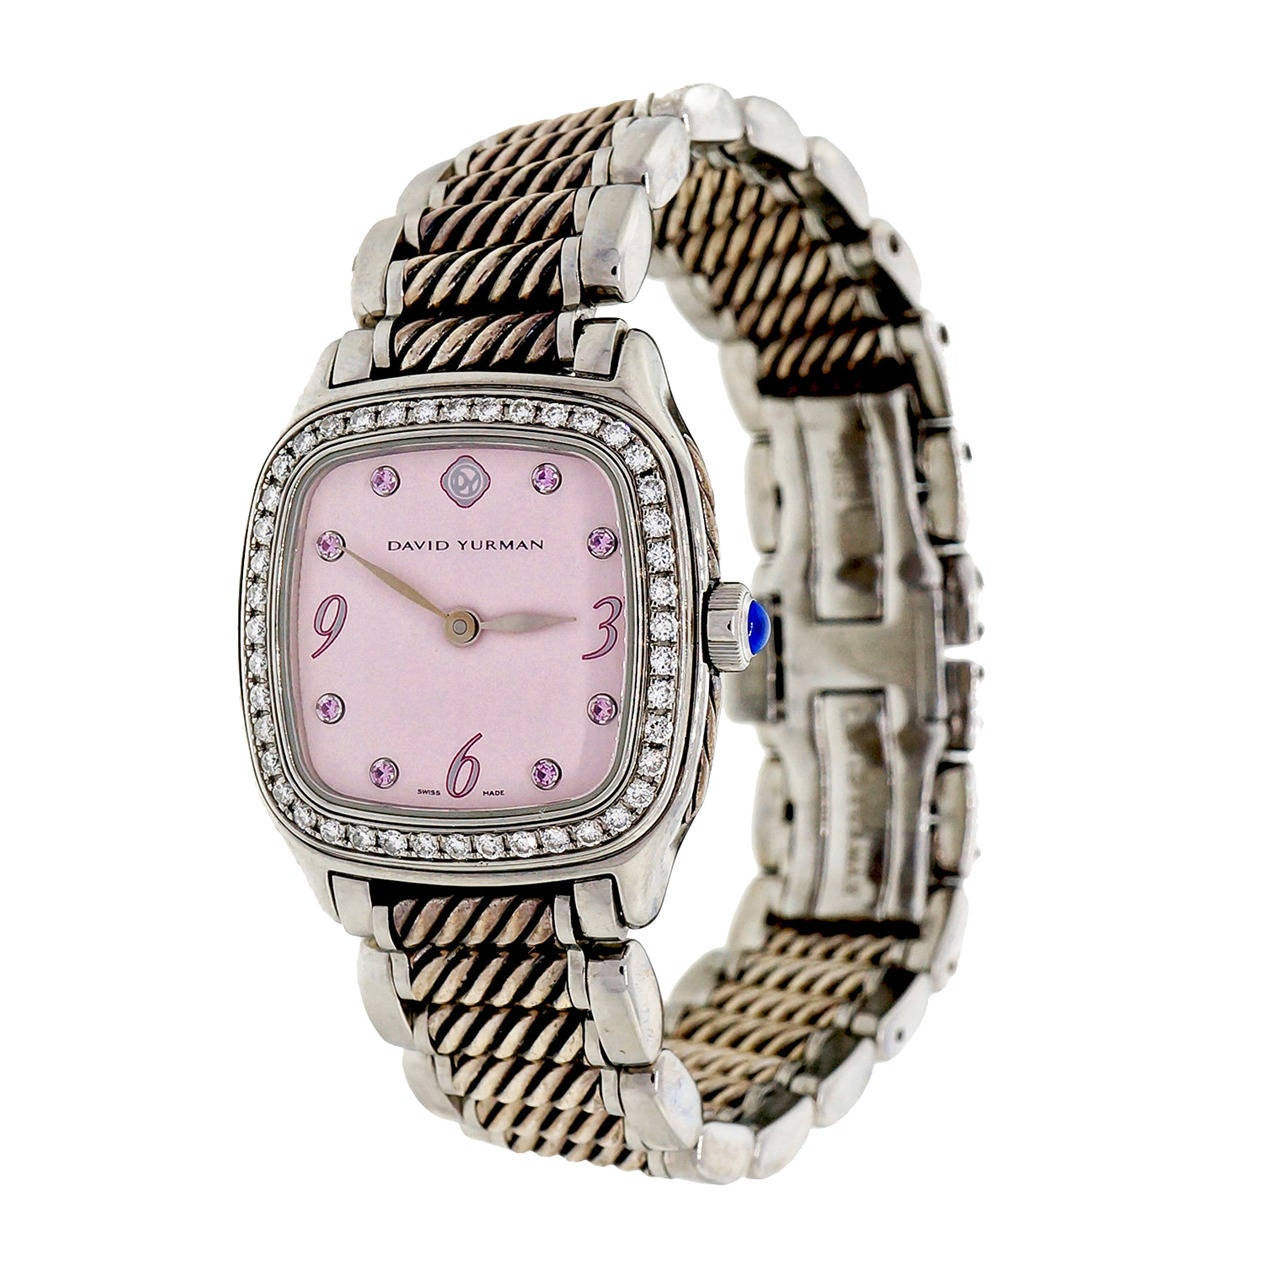 David Yurman Lady's Stainless Steel Diamond and sapphire. Thoroughbred Wristwatch, quartz movement  Stainless steel Bezel 45 full cut diamonds Dial: 8 pink Sapphire Length: 31mm Width: 26mm Case thickness: 7.41mm Bracelet width at case: